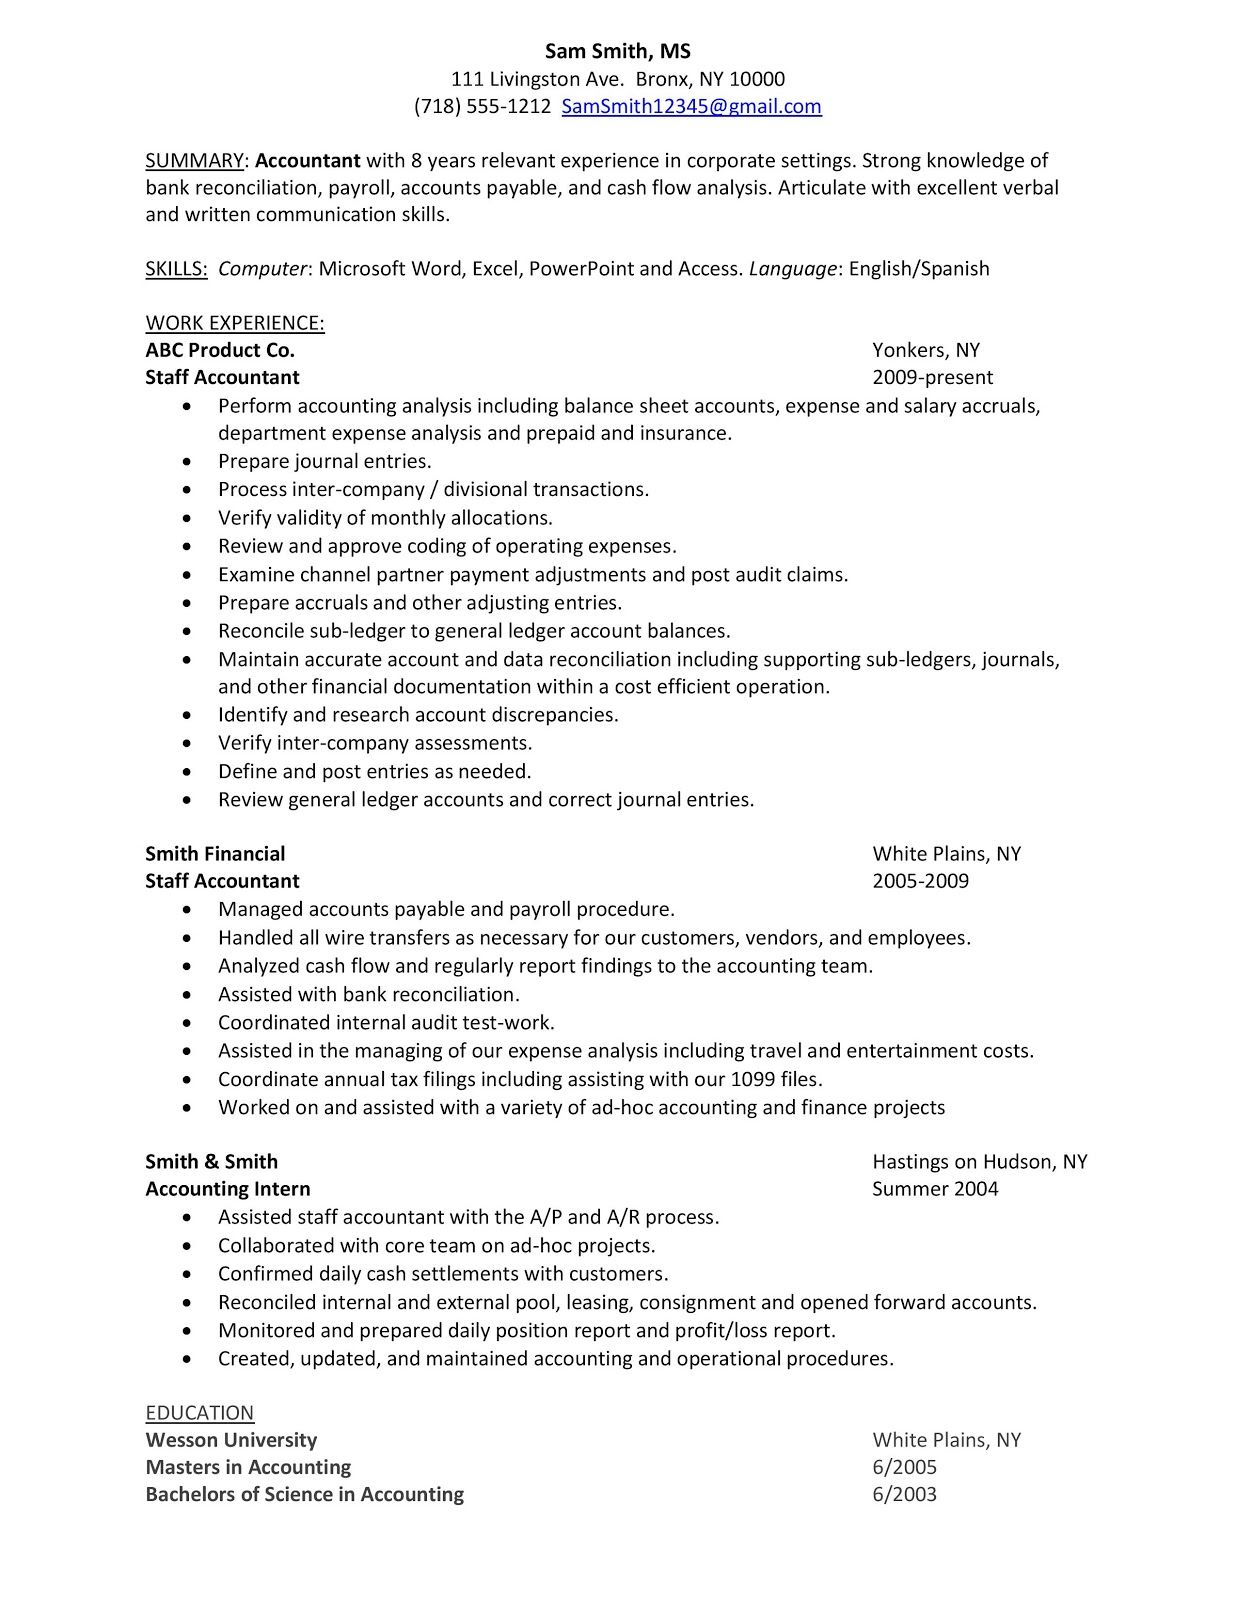 Accounting Intern Resume The Power For Career Success And Know Someone What Now Staff